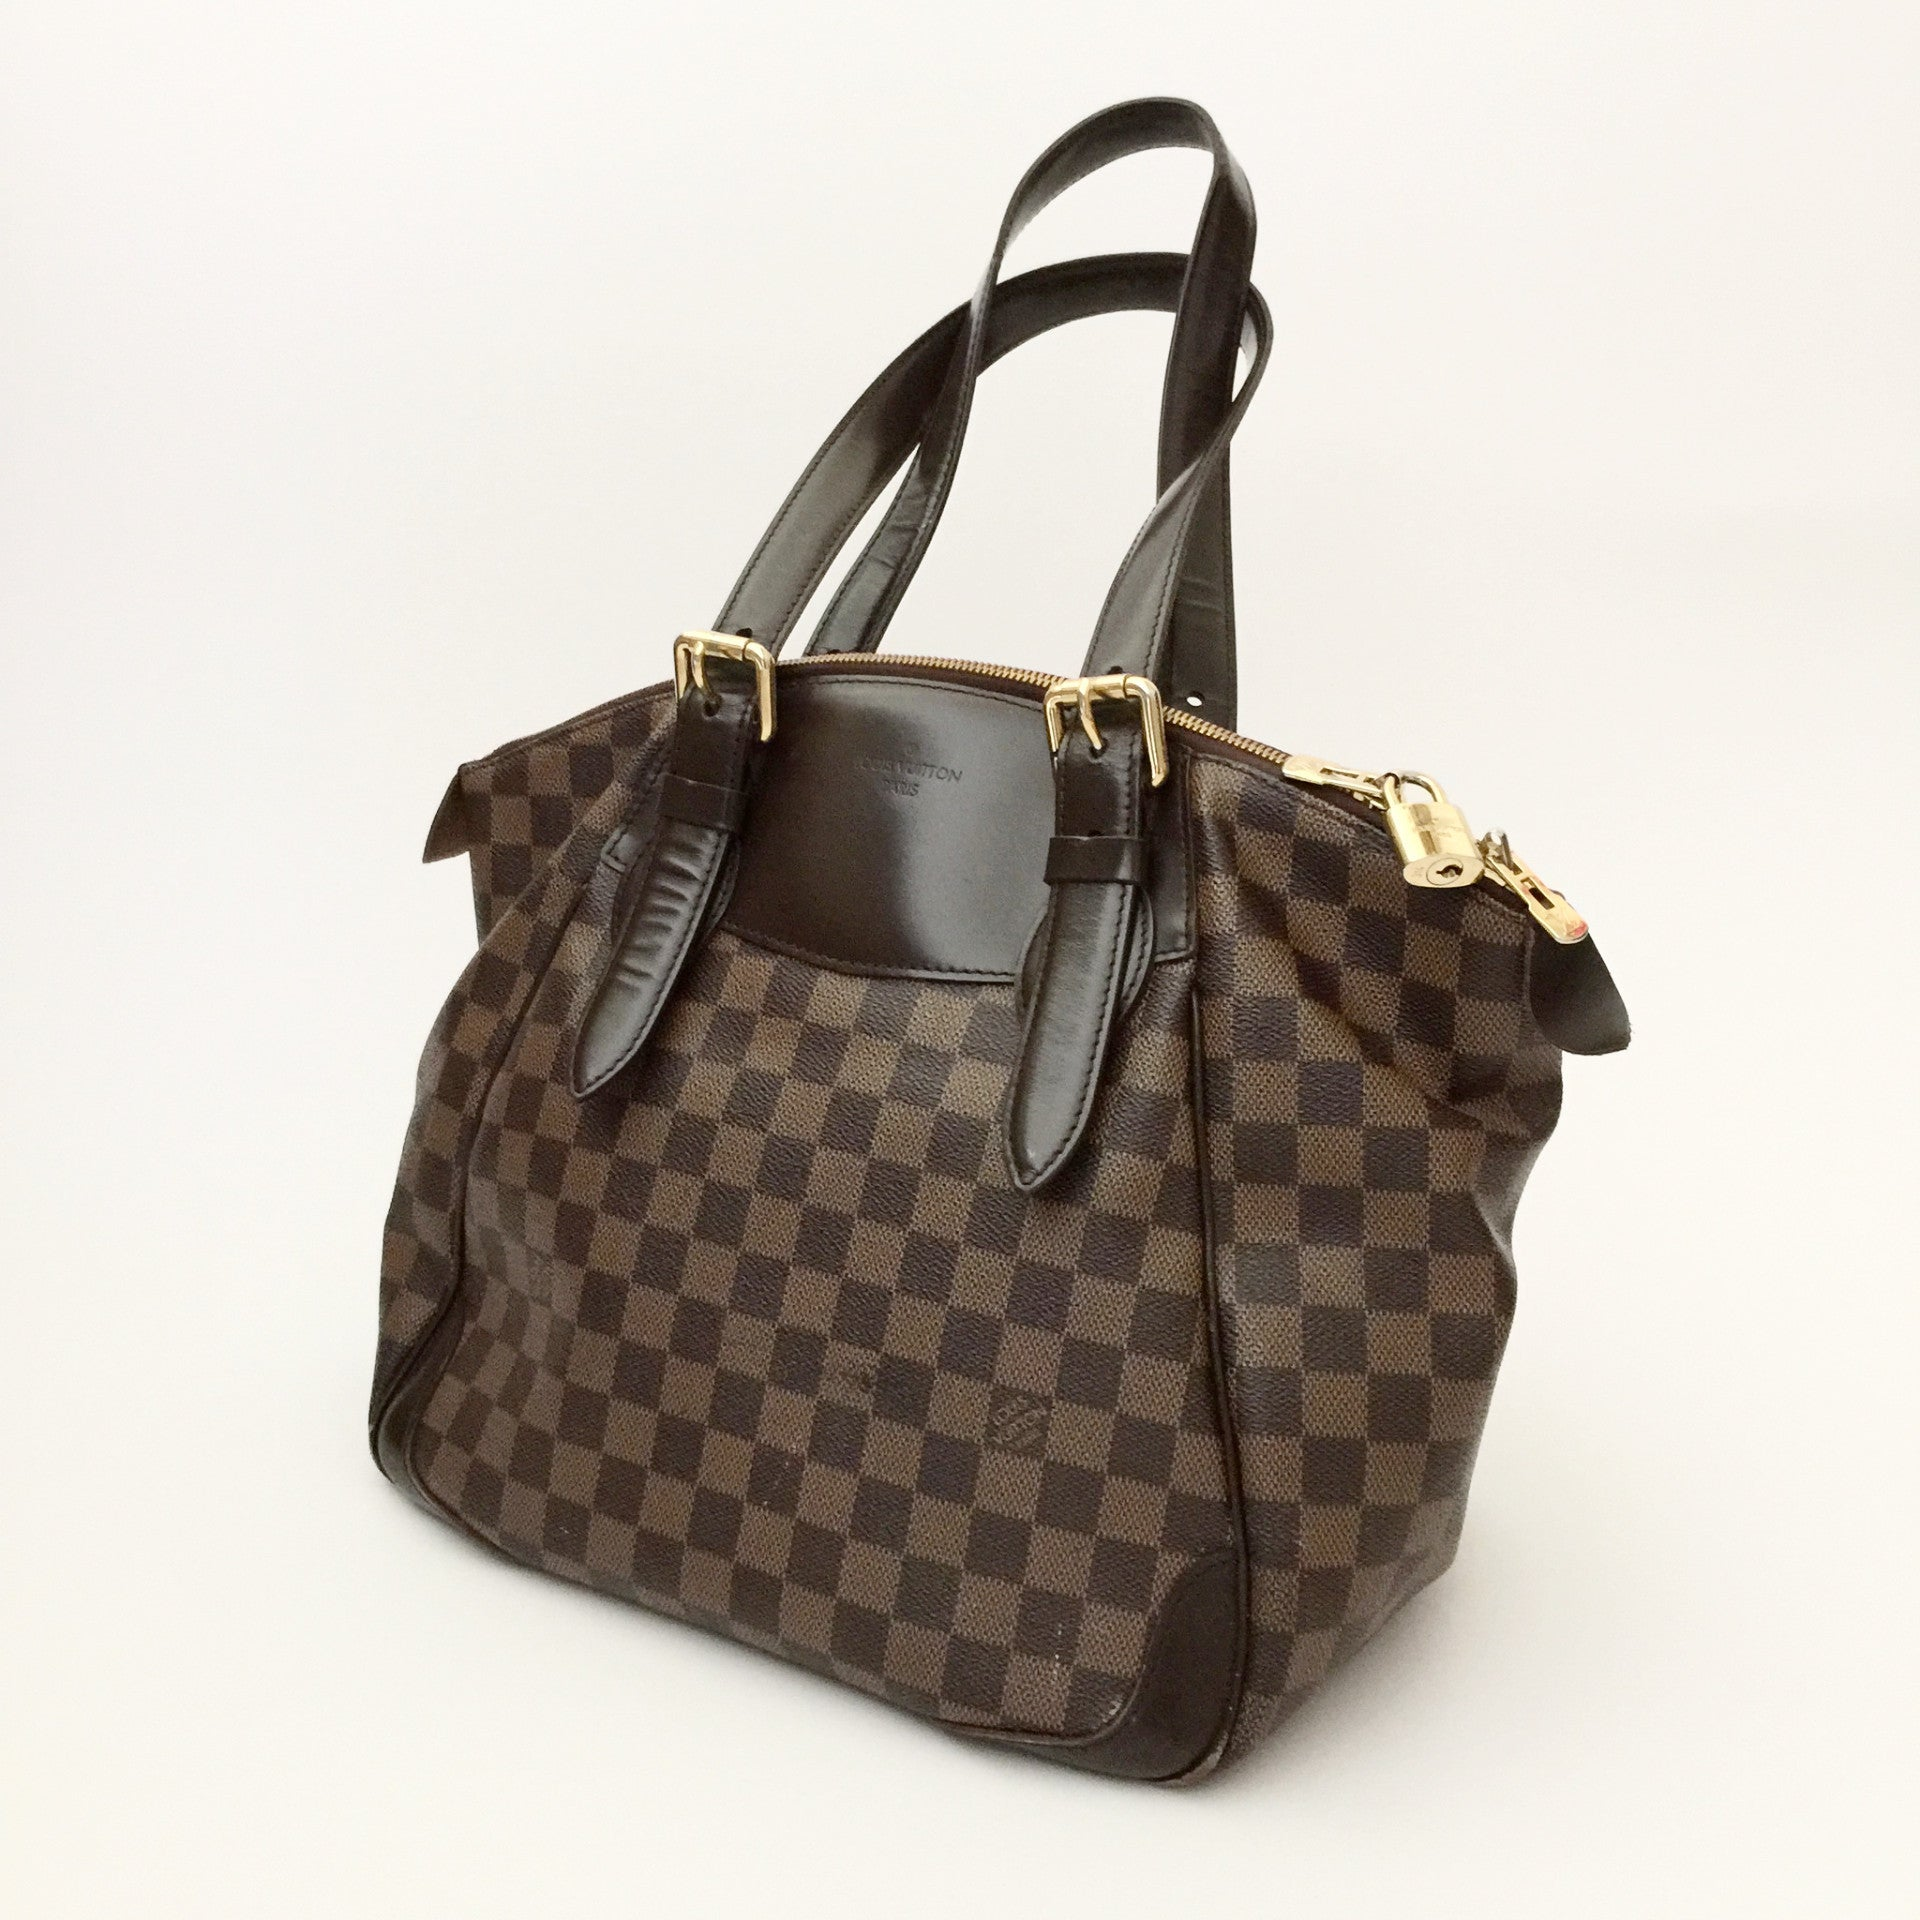 Authentic LOUIS VUITTON Verona MM